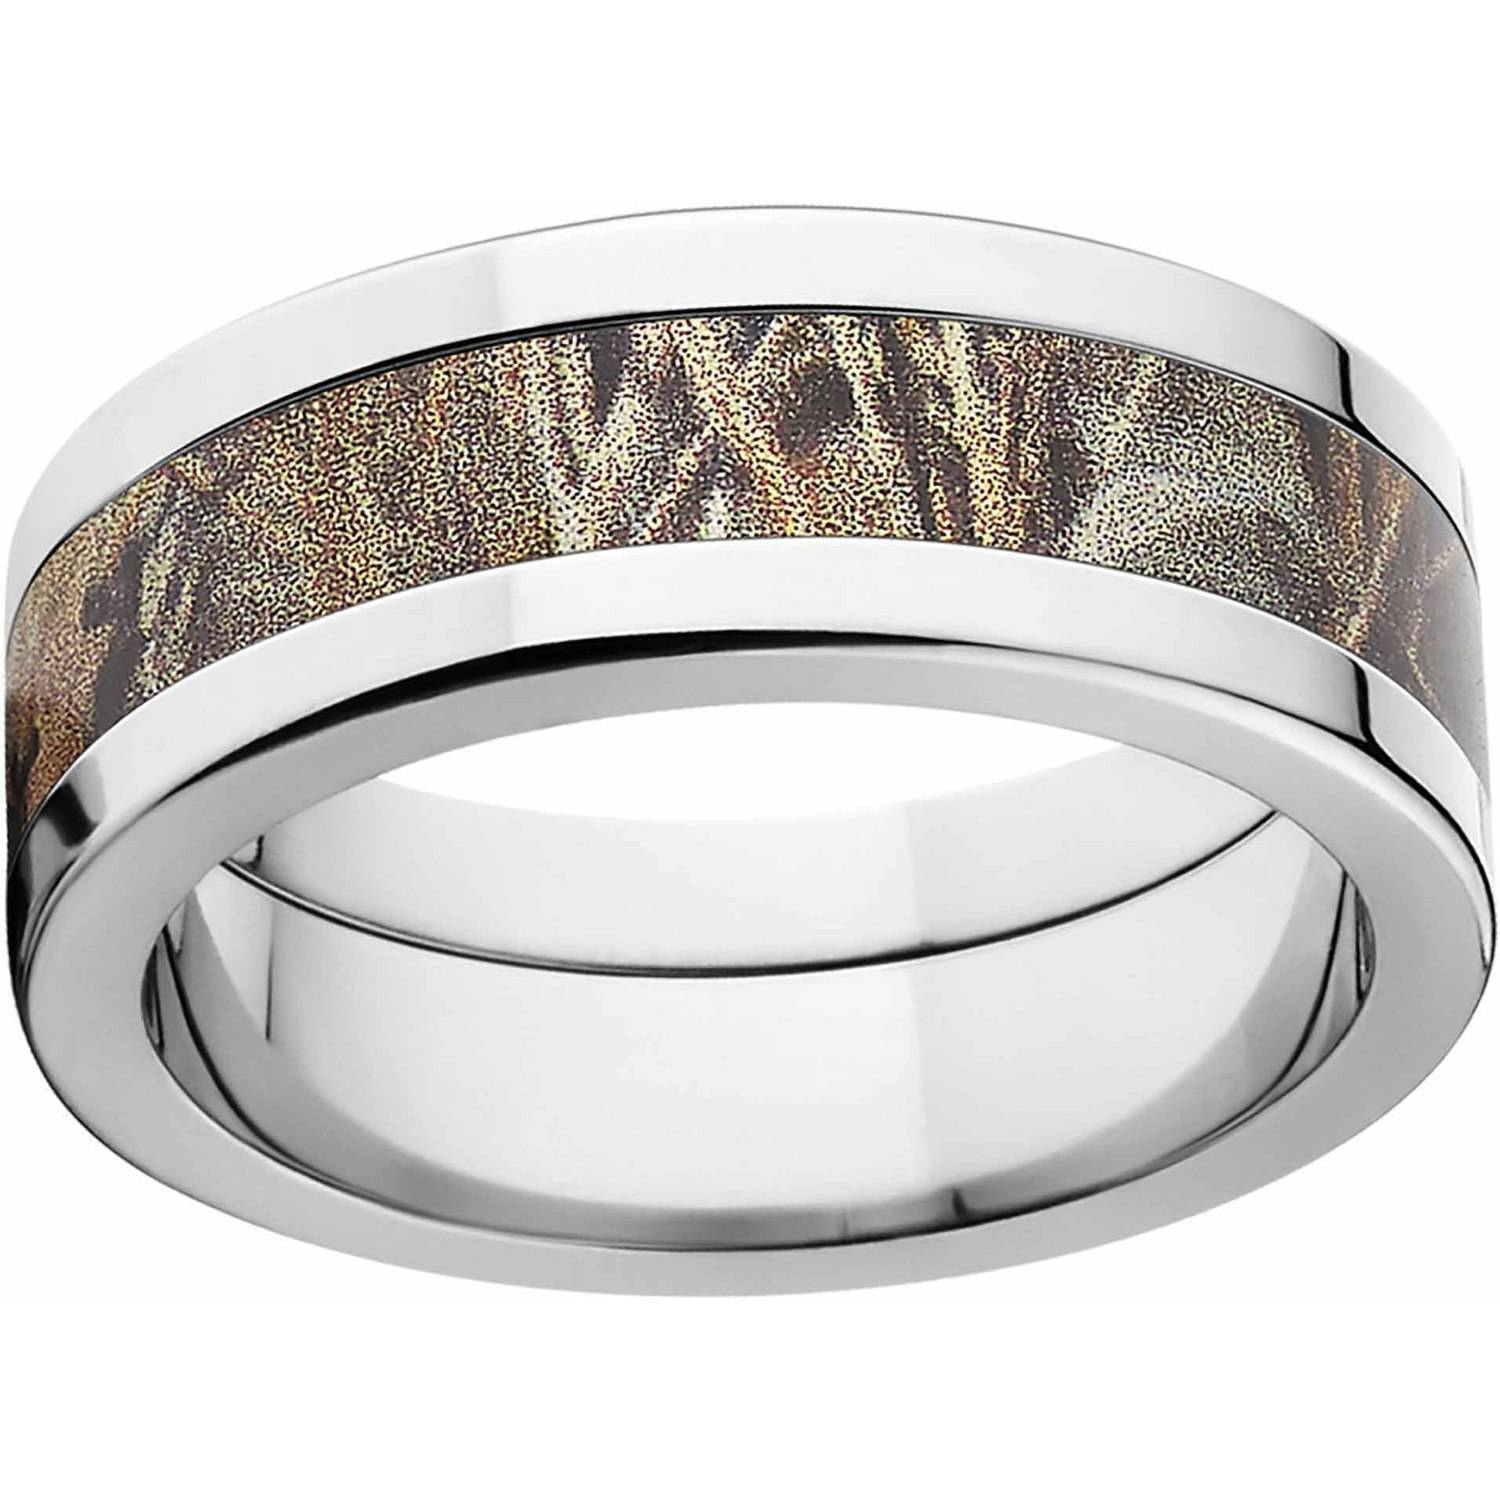 High Quality Realtree Max 4 Menu0027s Camo 8mm Stainless Steel Wedding Band